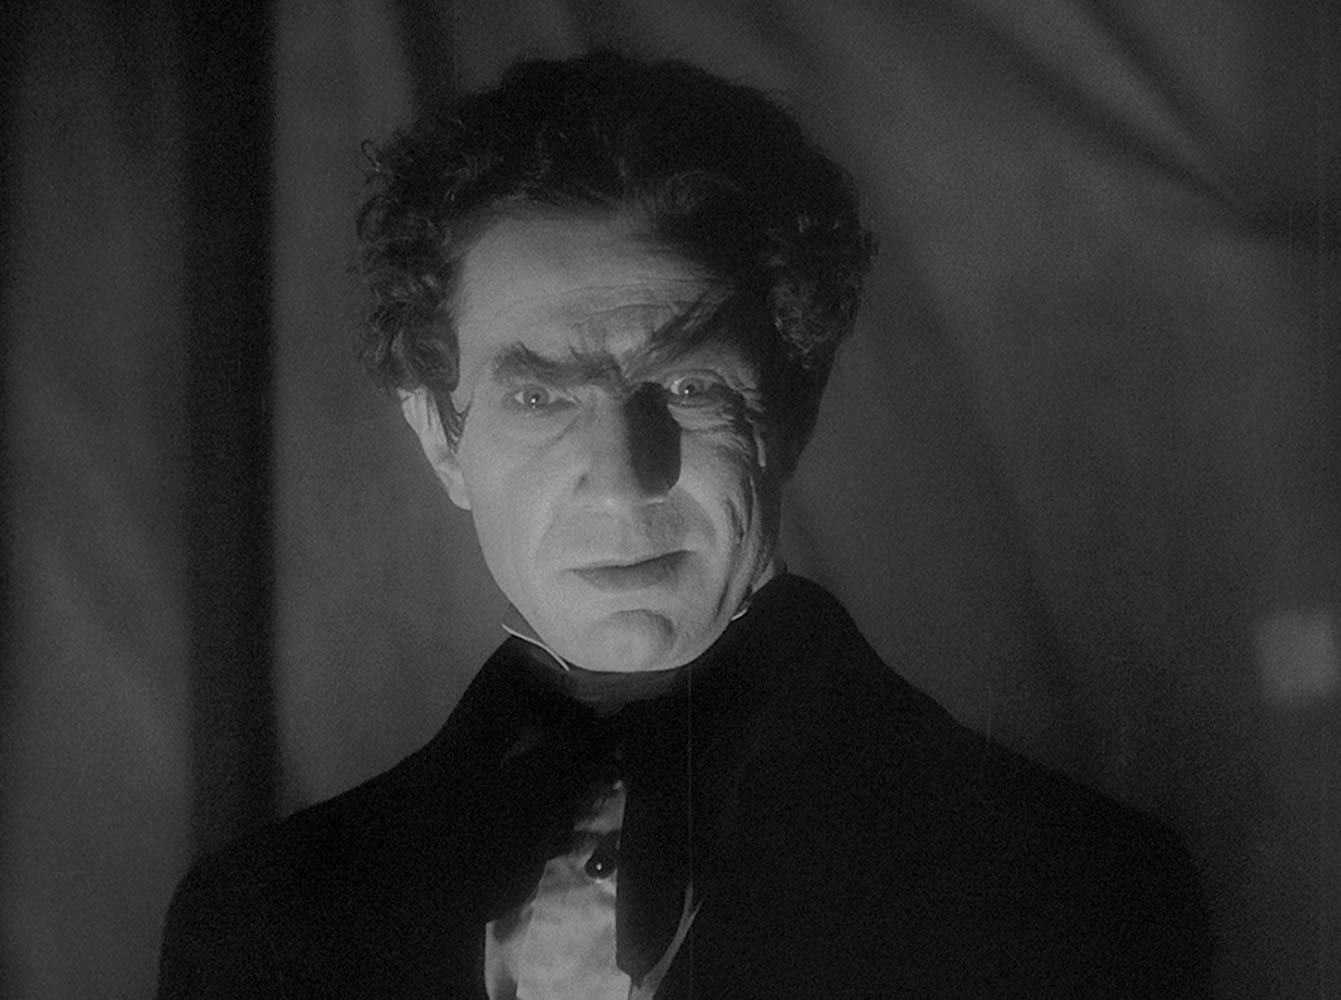 Bela Lugosi as Dr Mirakle in Murders in the Rue Morgue (1932)